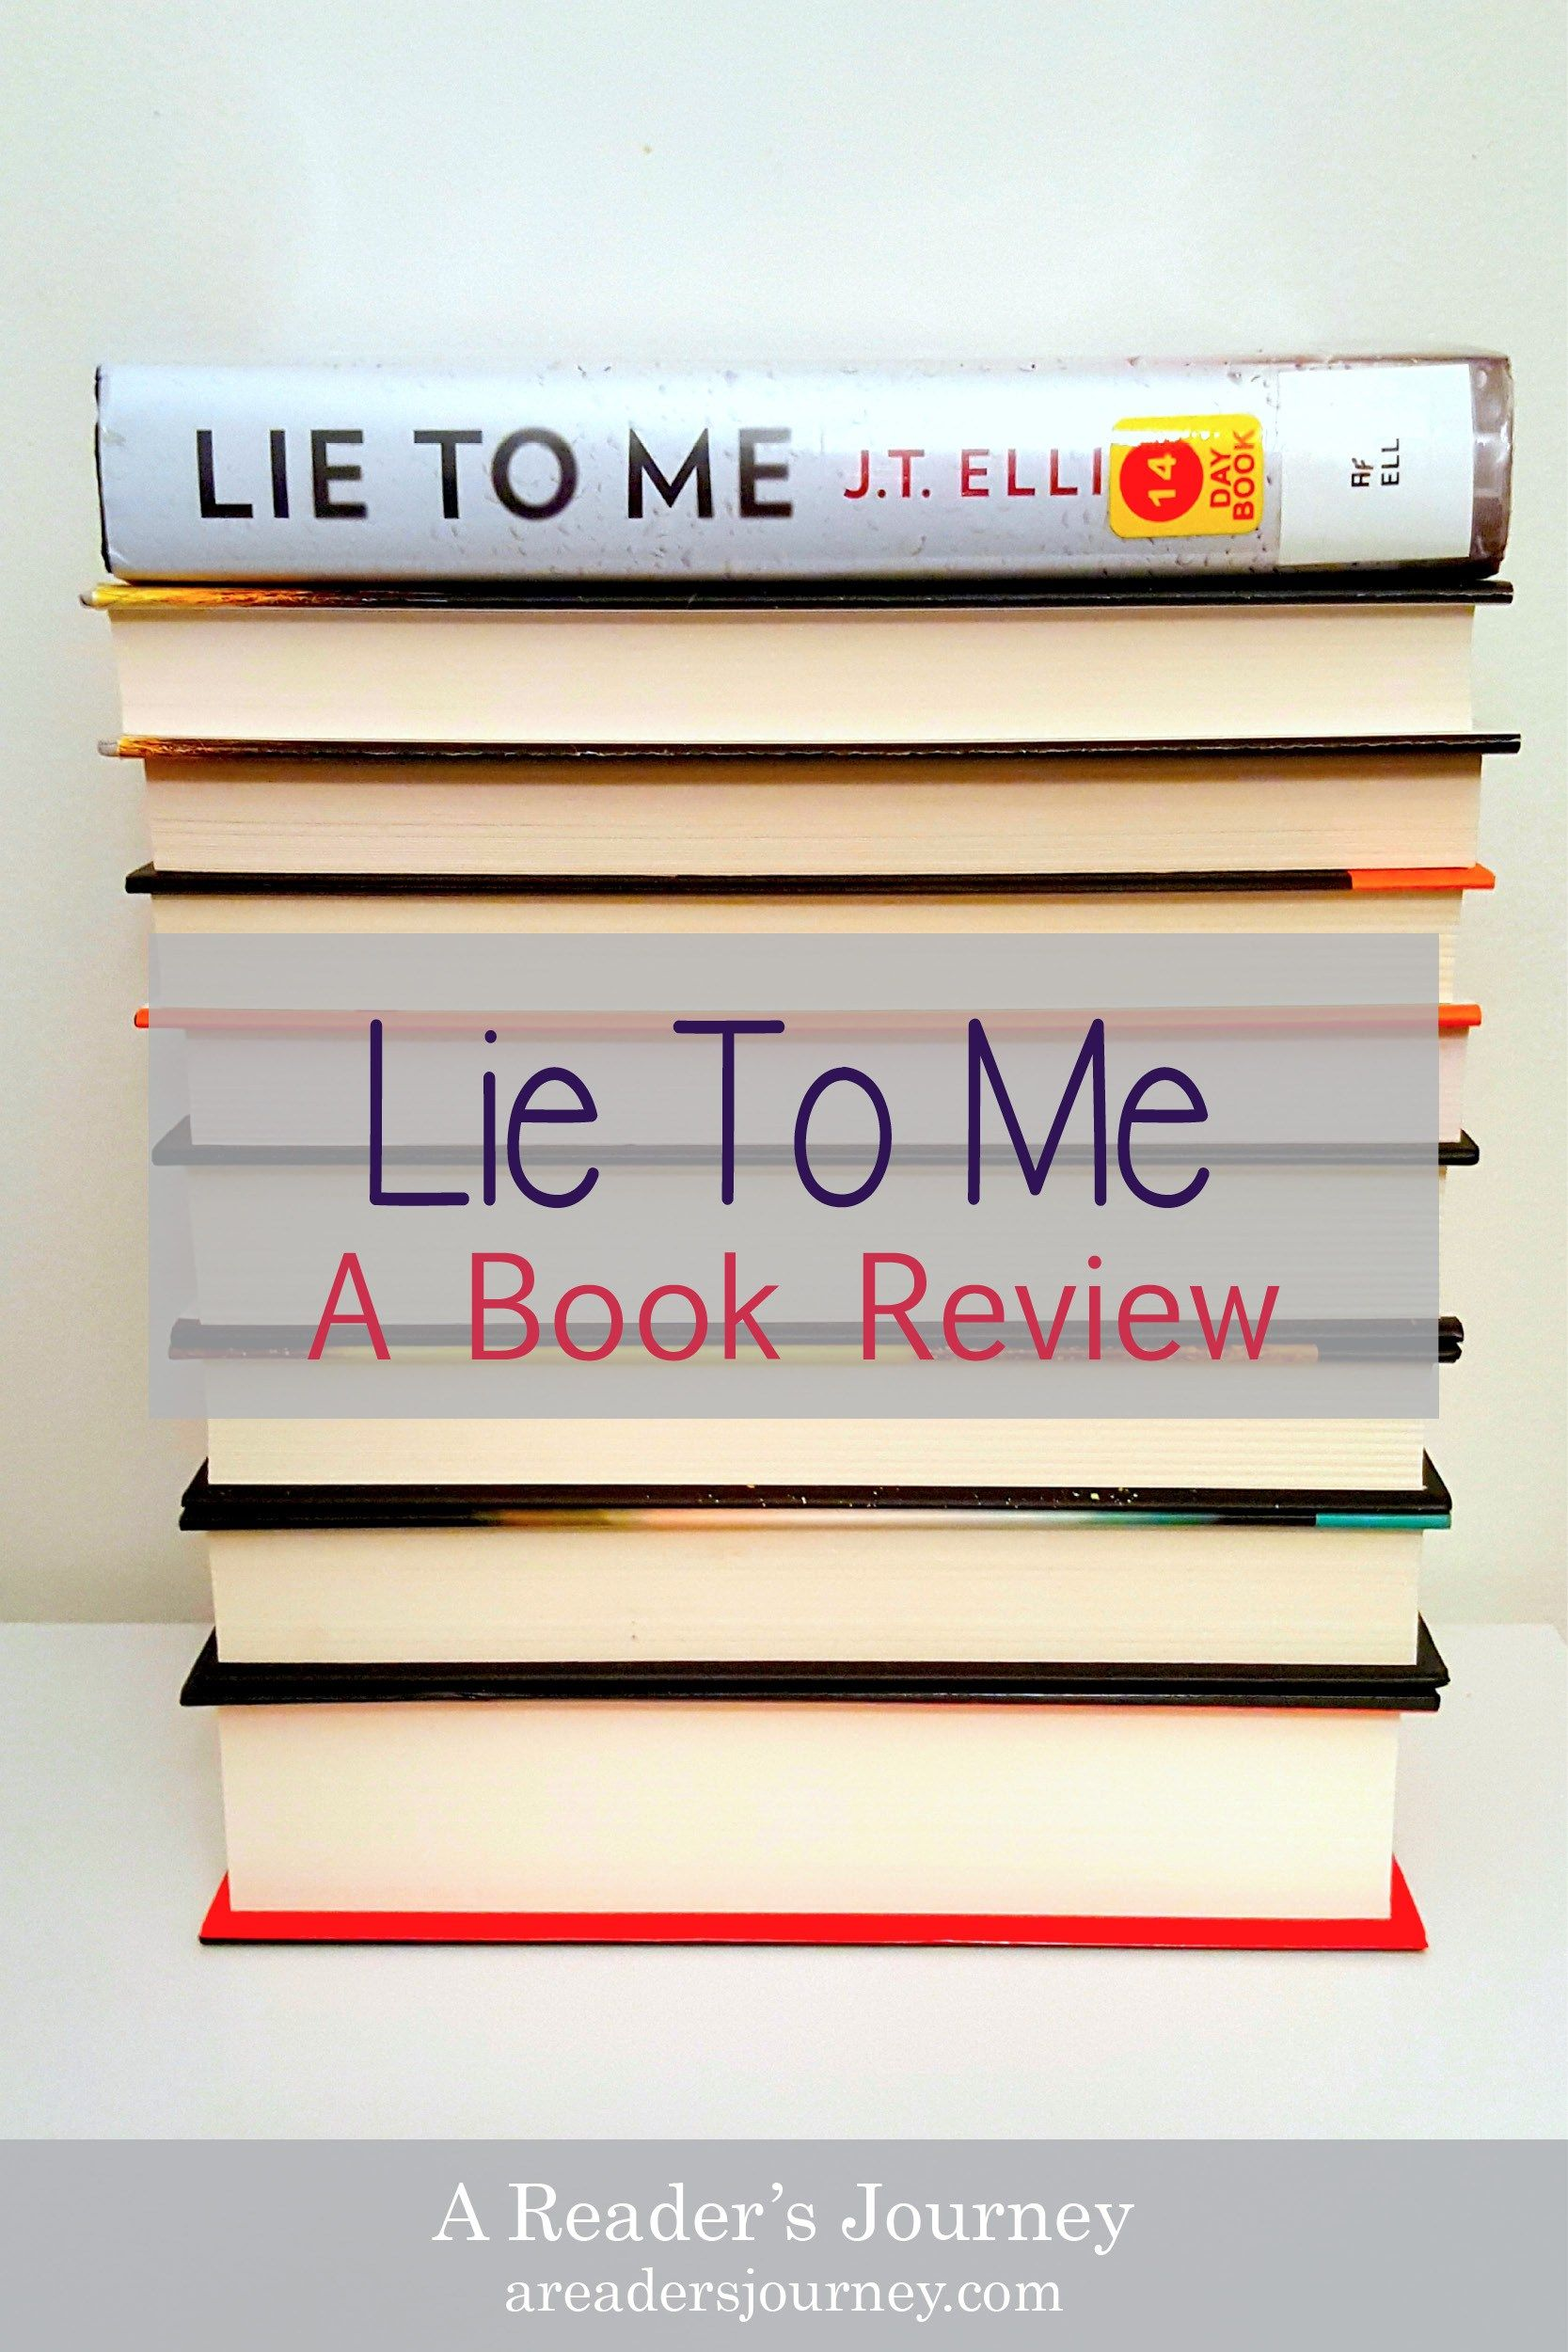 Lie to me by jt ellison a book review on book review